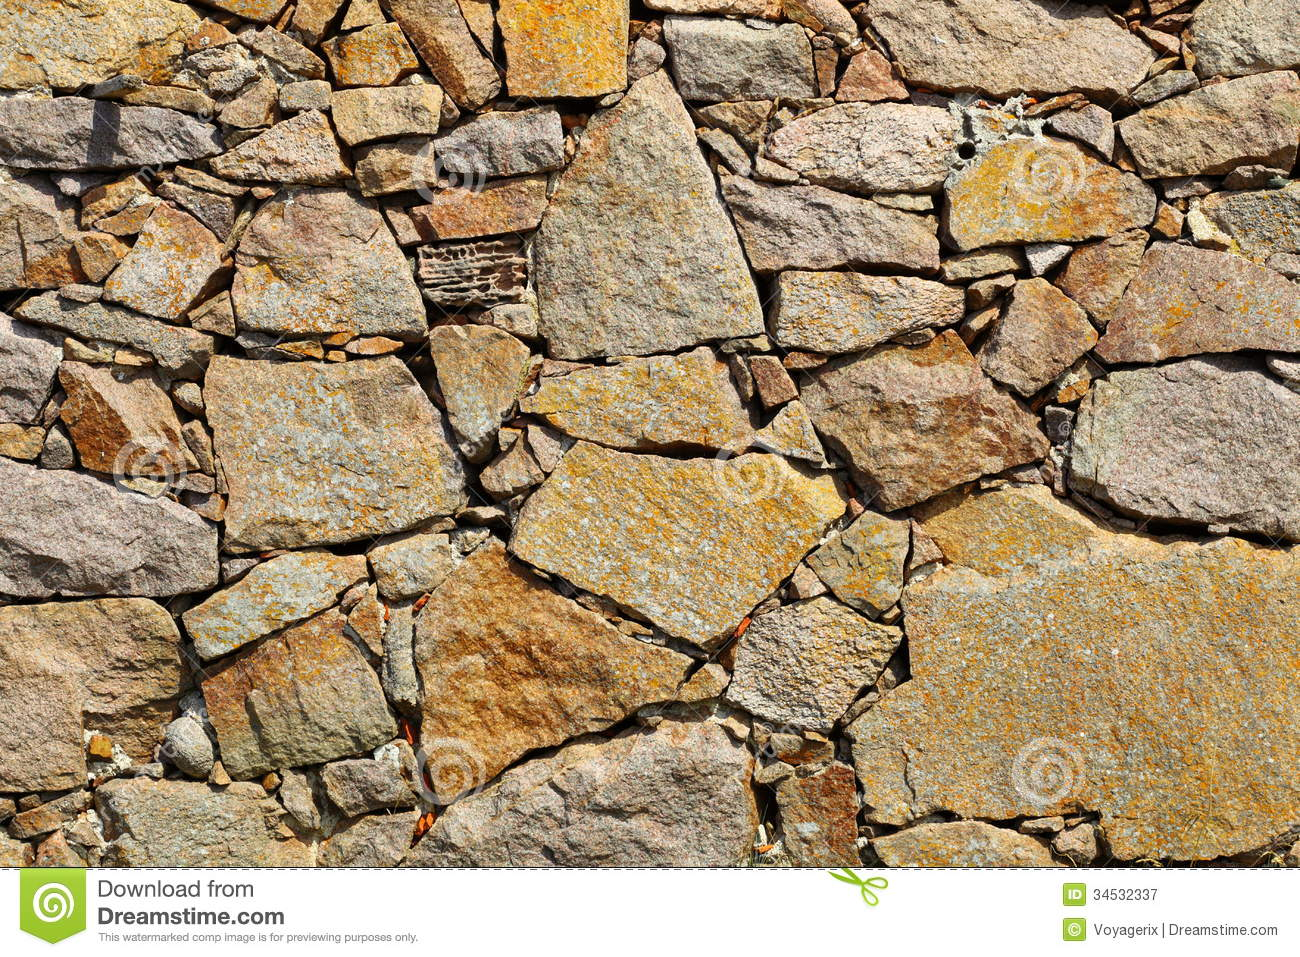 Wallpaper Batu Alam 3d Background Of Stone Wall Texture Royalty Free Stock